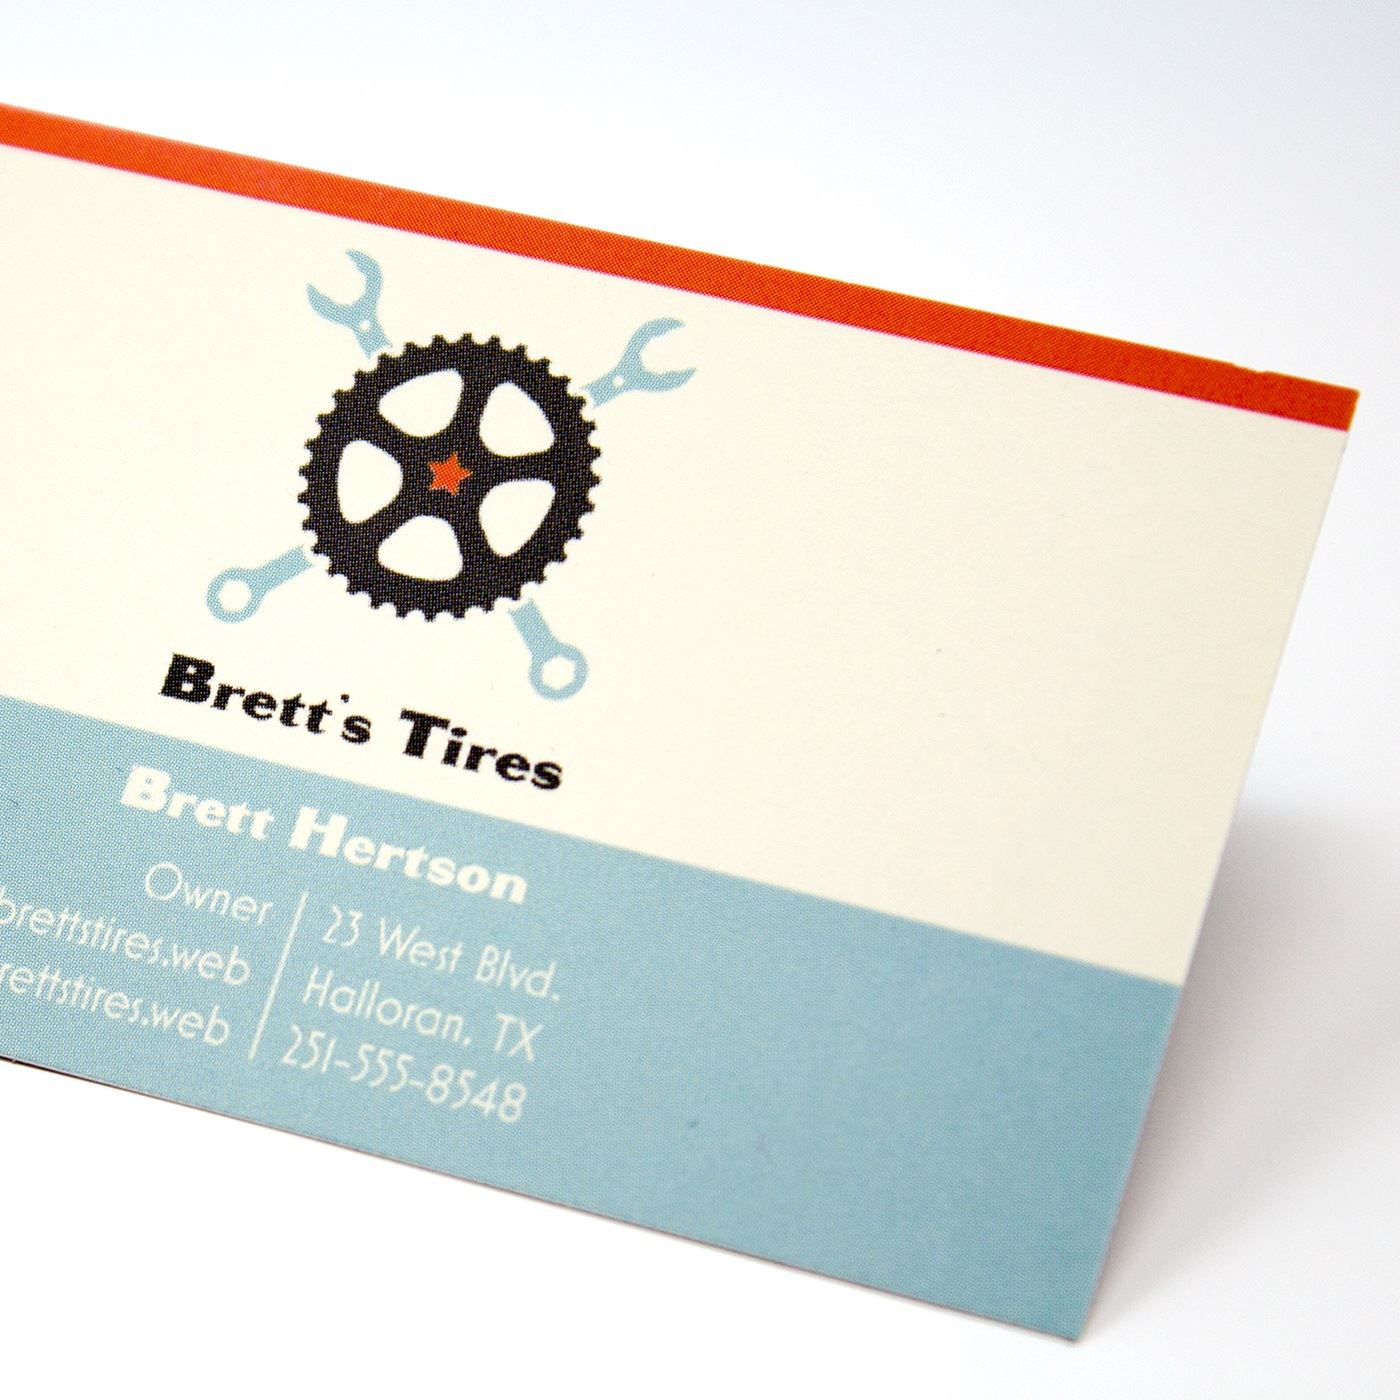 Soft touch business cards soft touch coating vistaprint soft touch business cards reheart